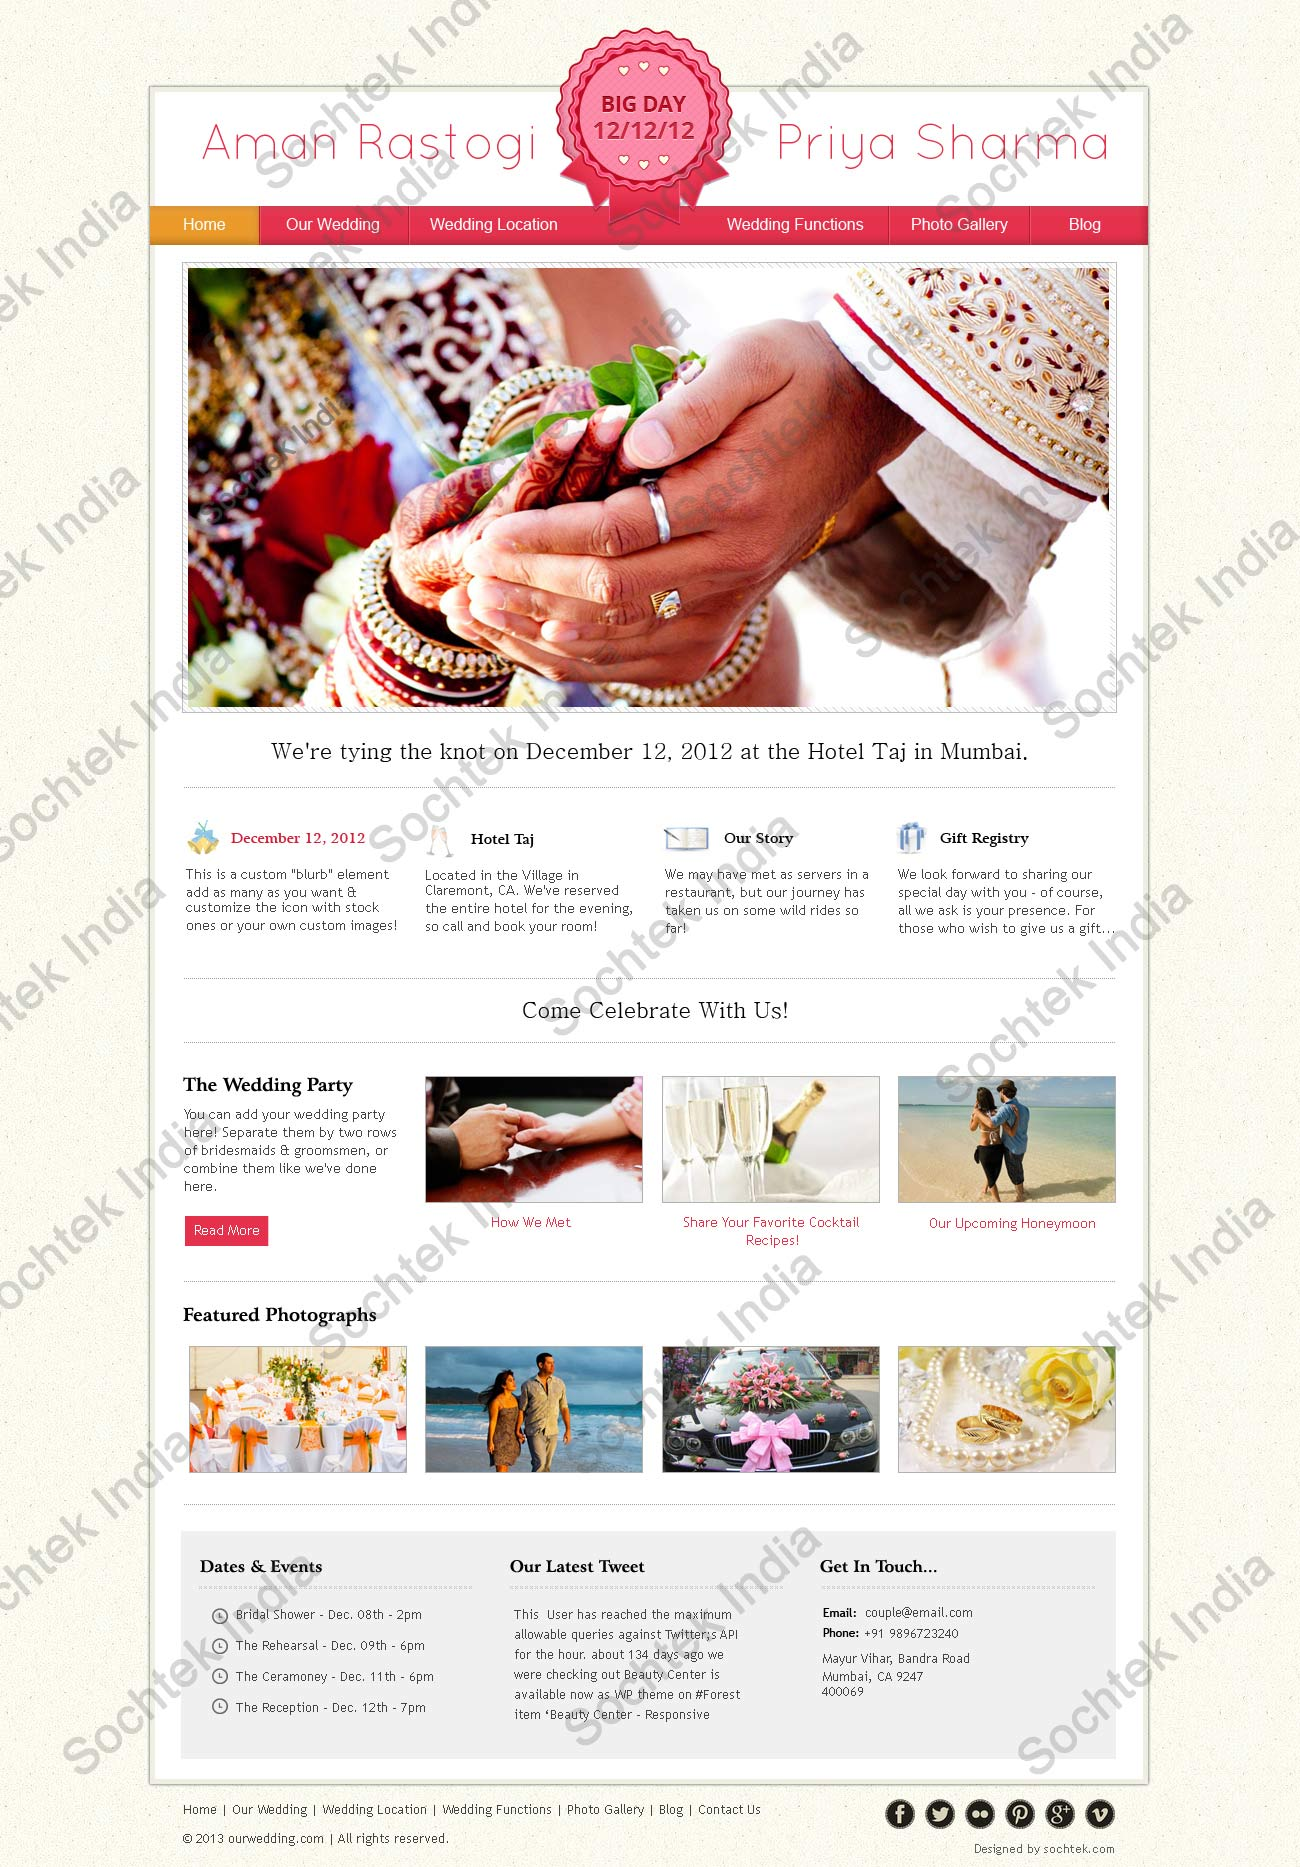 wedding-website-design6